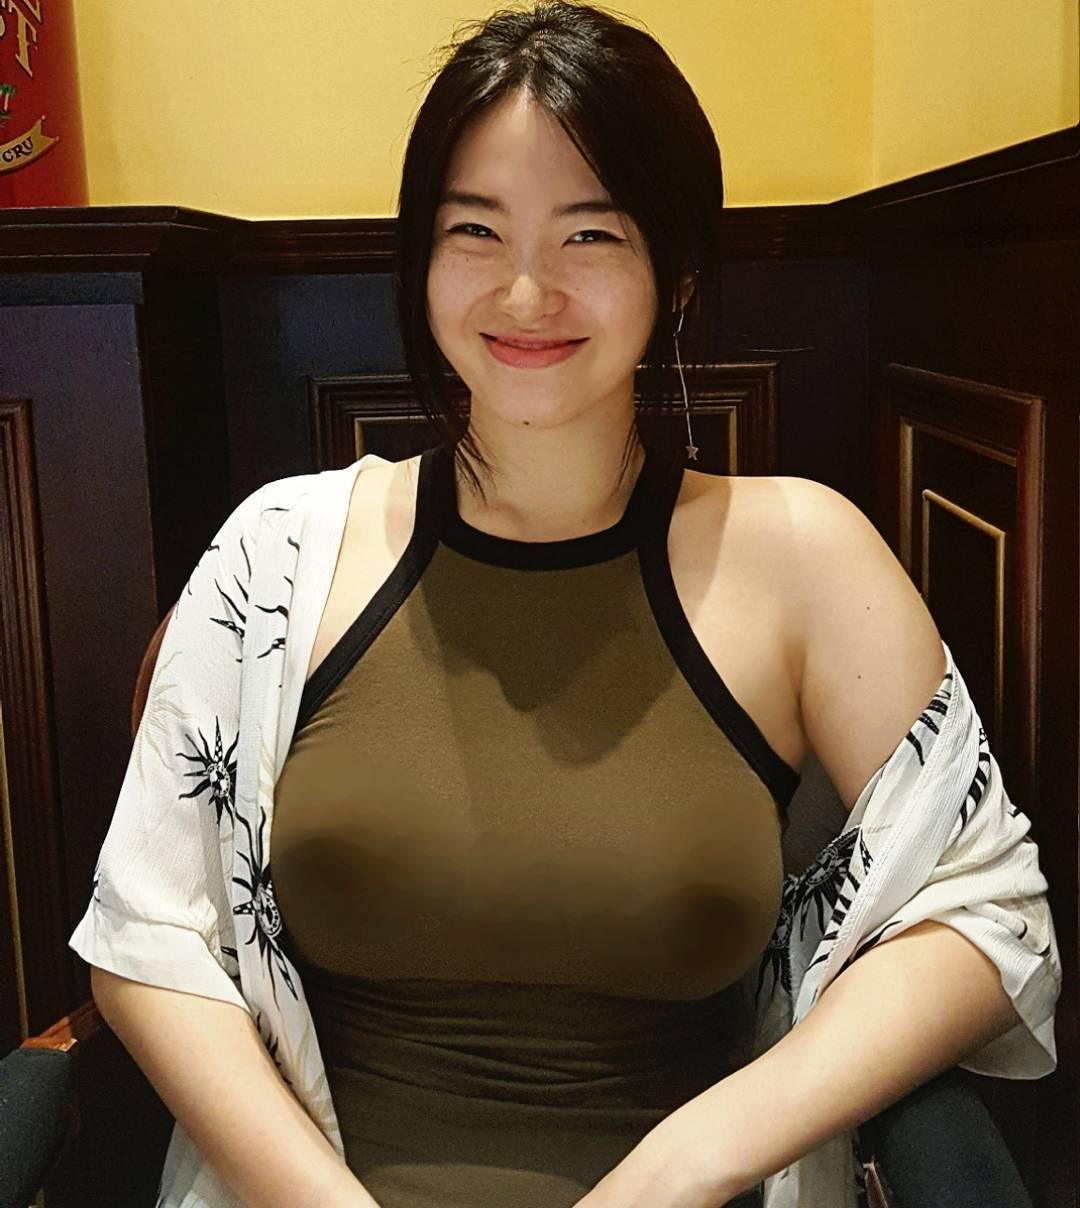 Juasicko Big Boobs Picture and Photo